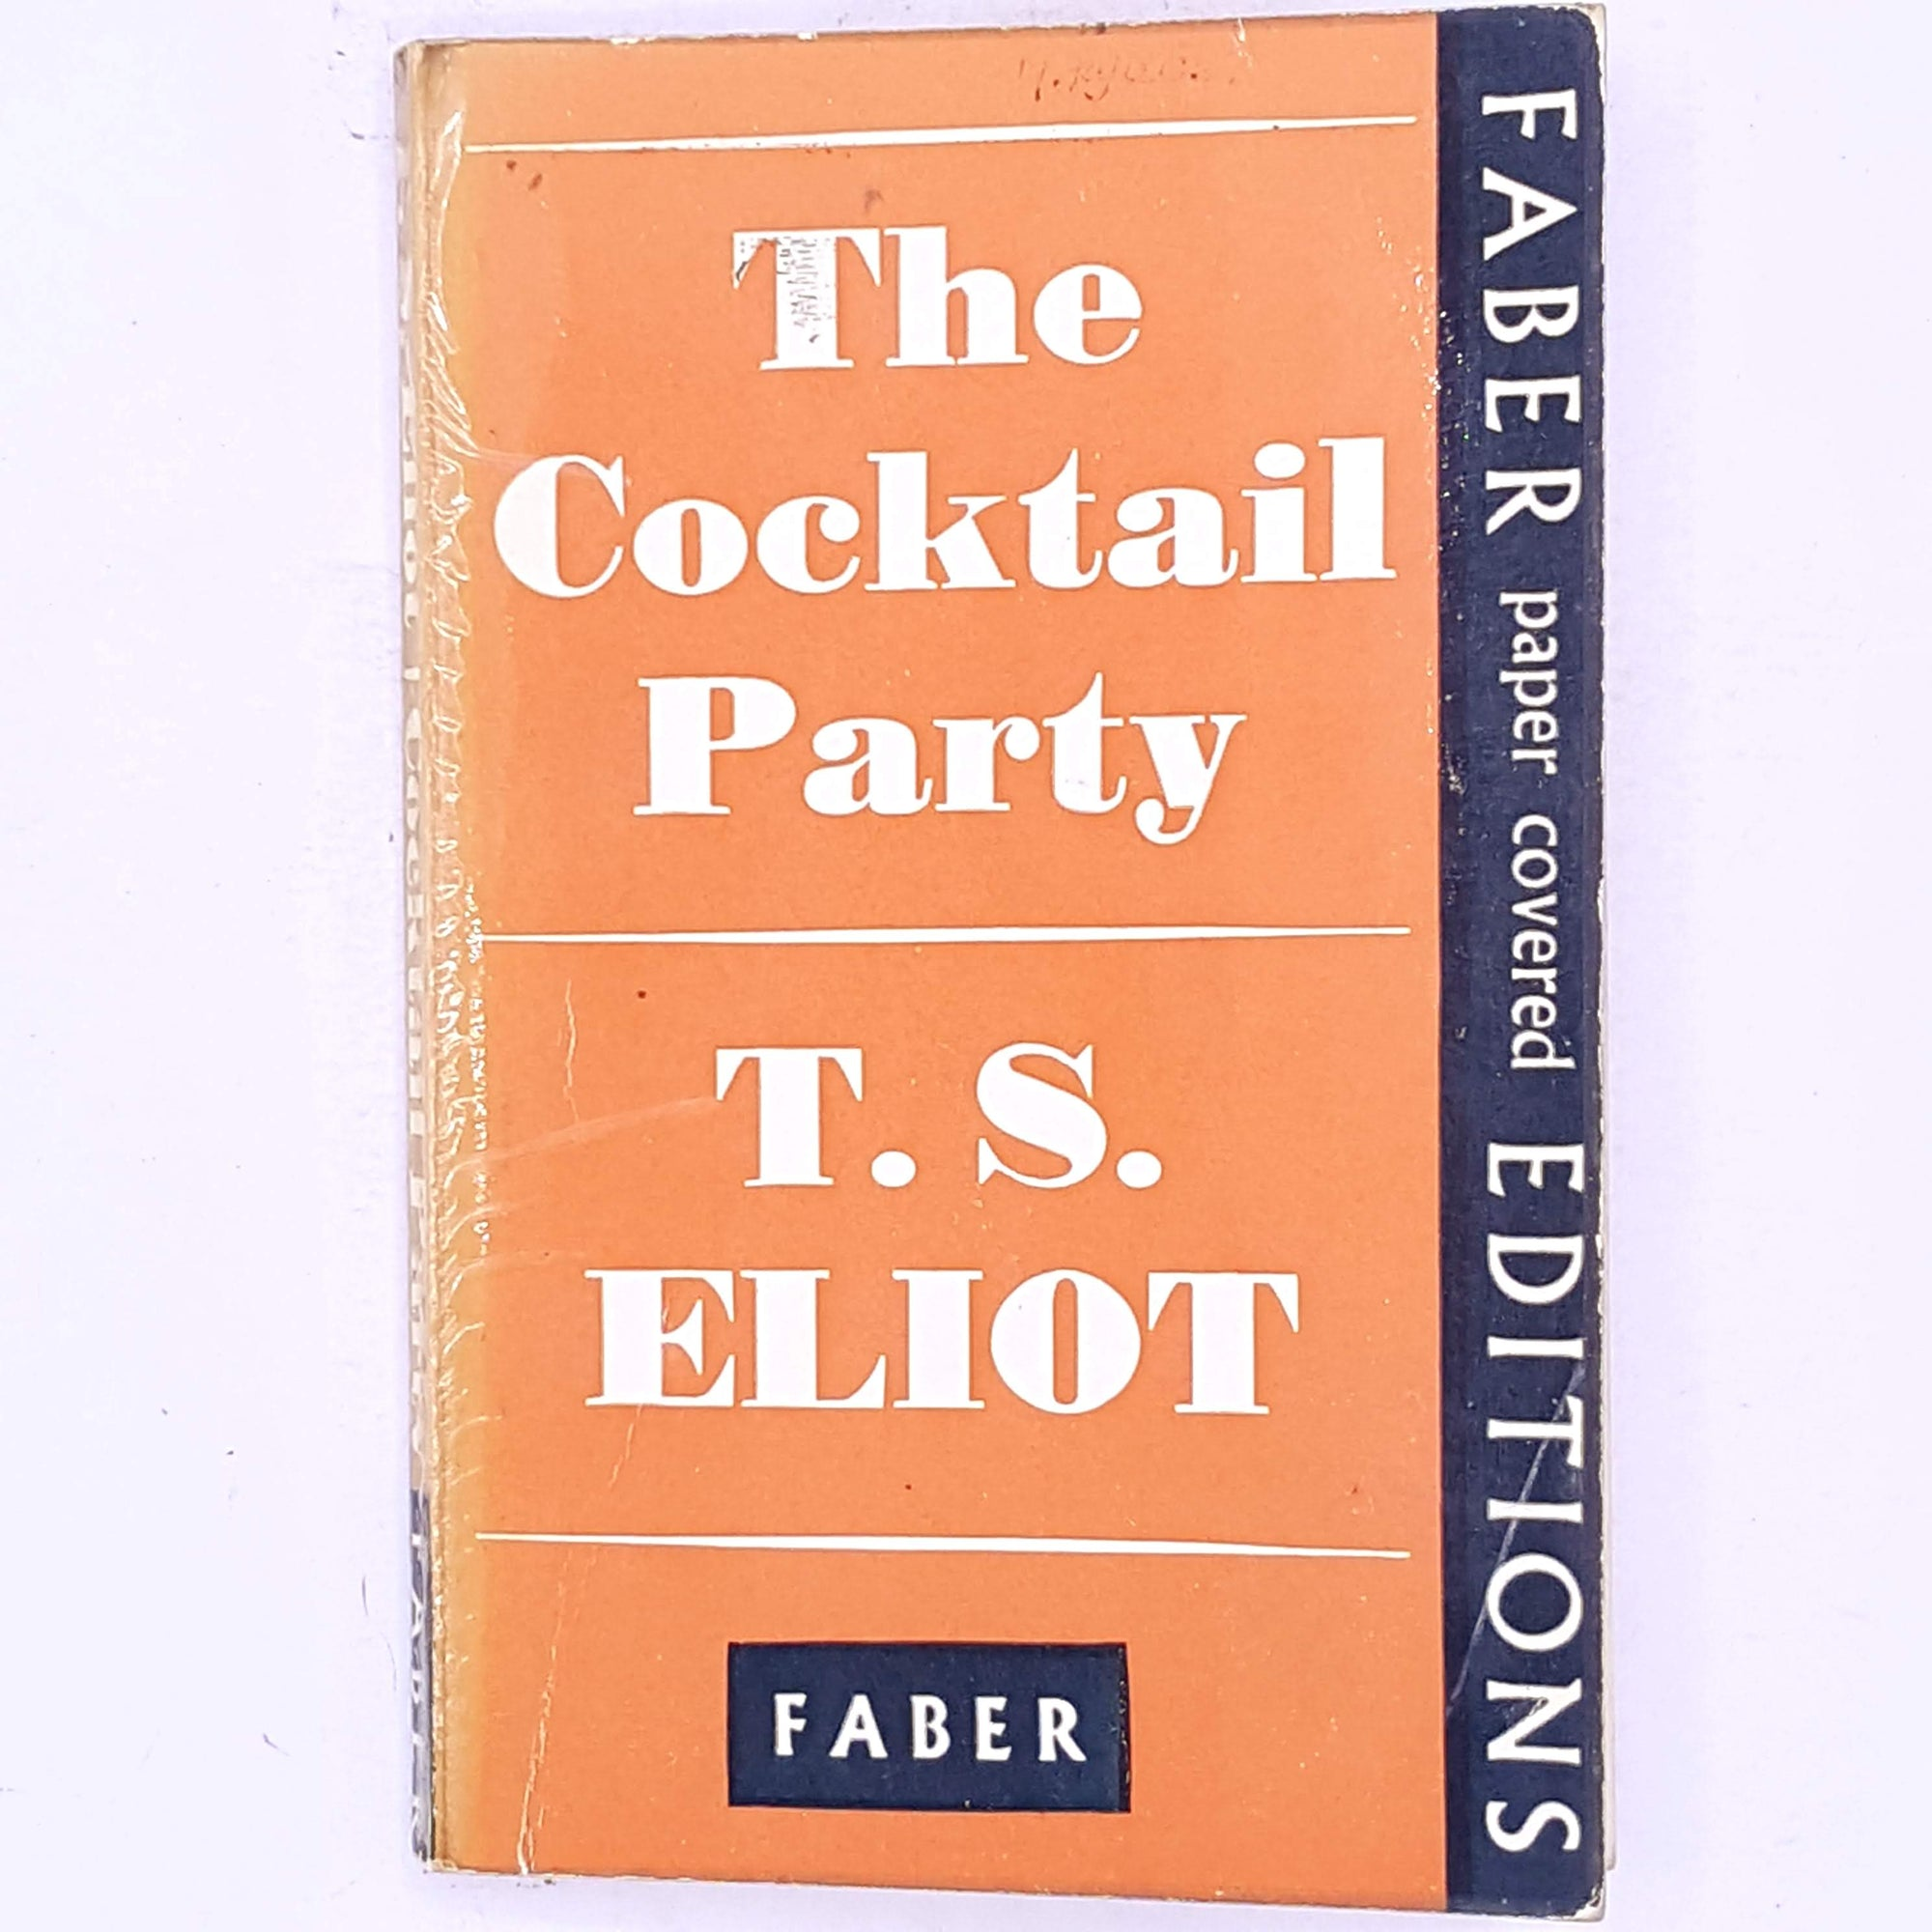 t.s.-eliot-books-the-cocktail-party-play-play-write-poet-author-country-house-library-antique-thrift-patterned-decorative-vintage-old-classic-